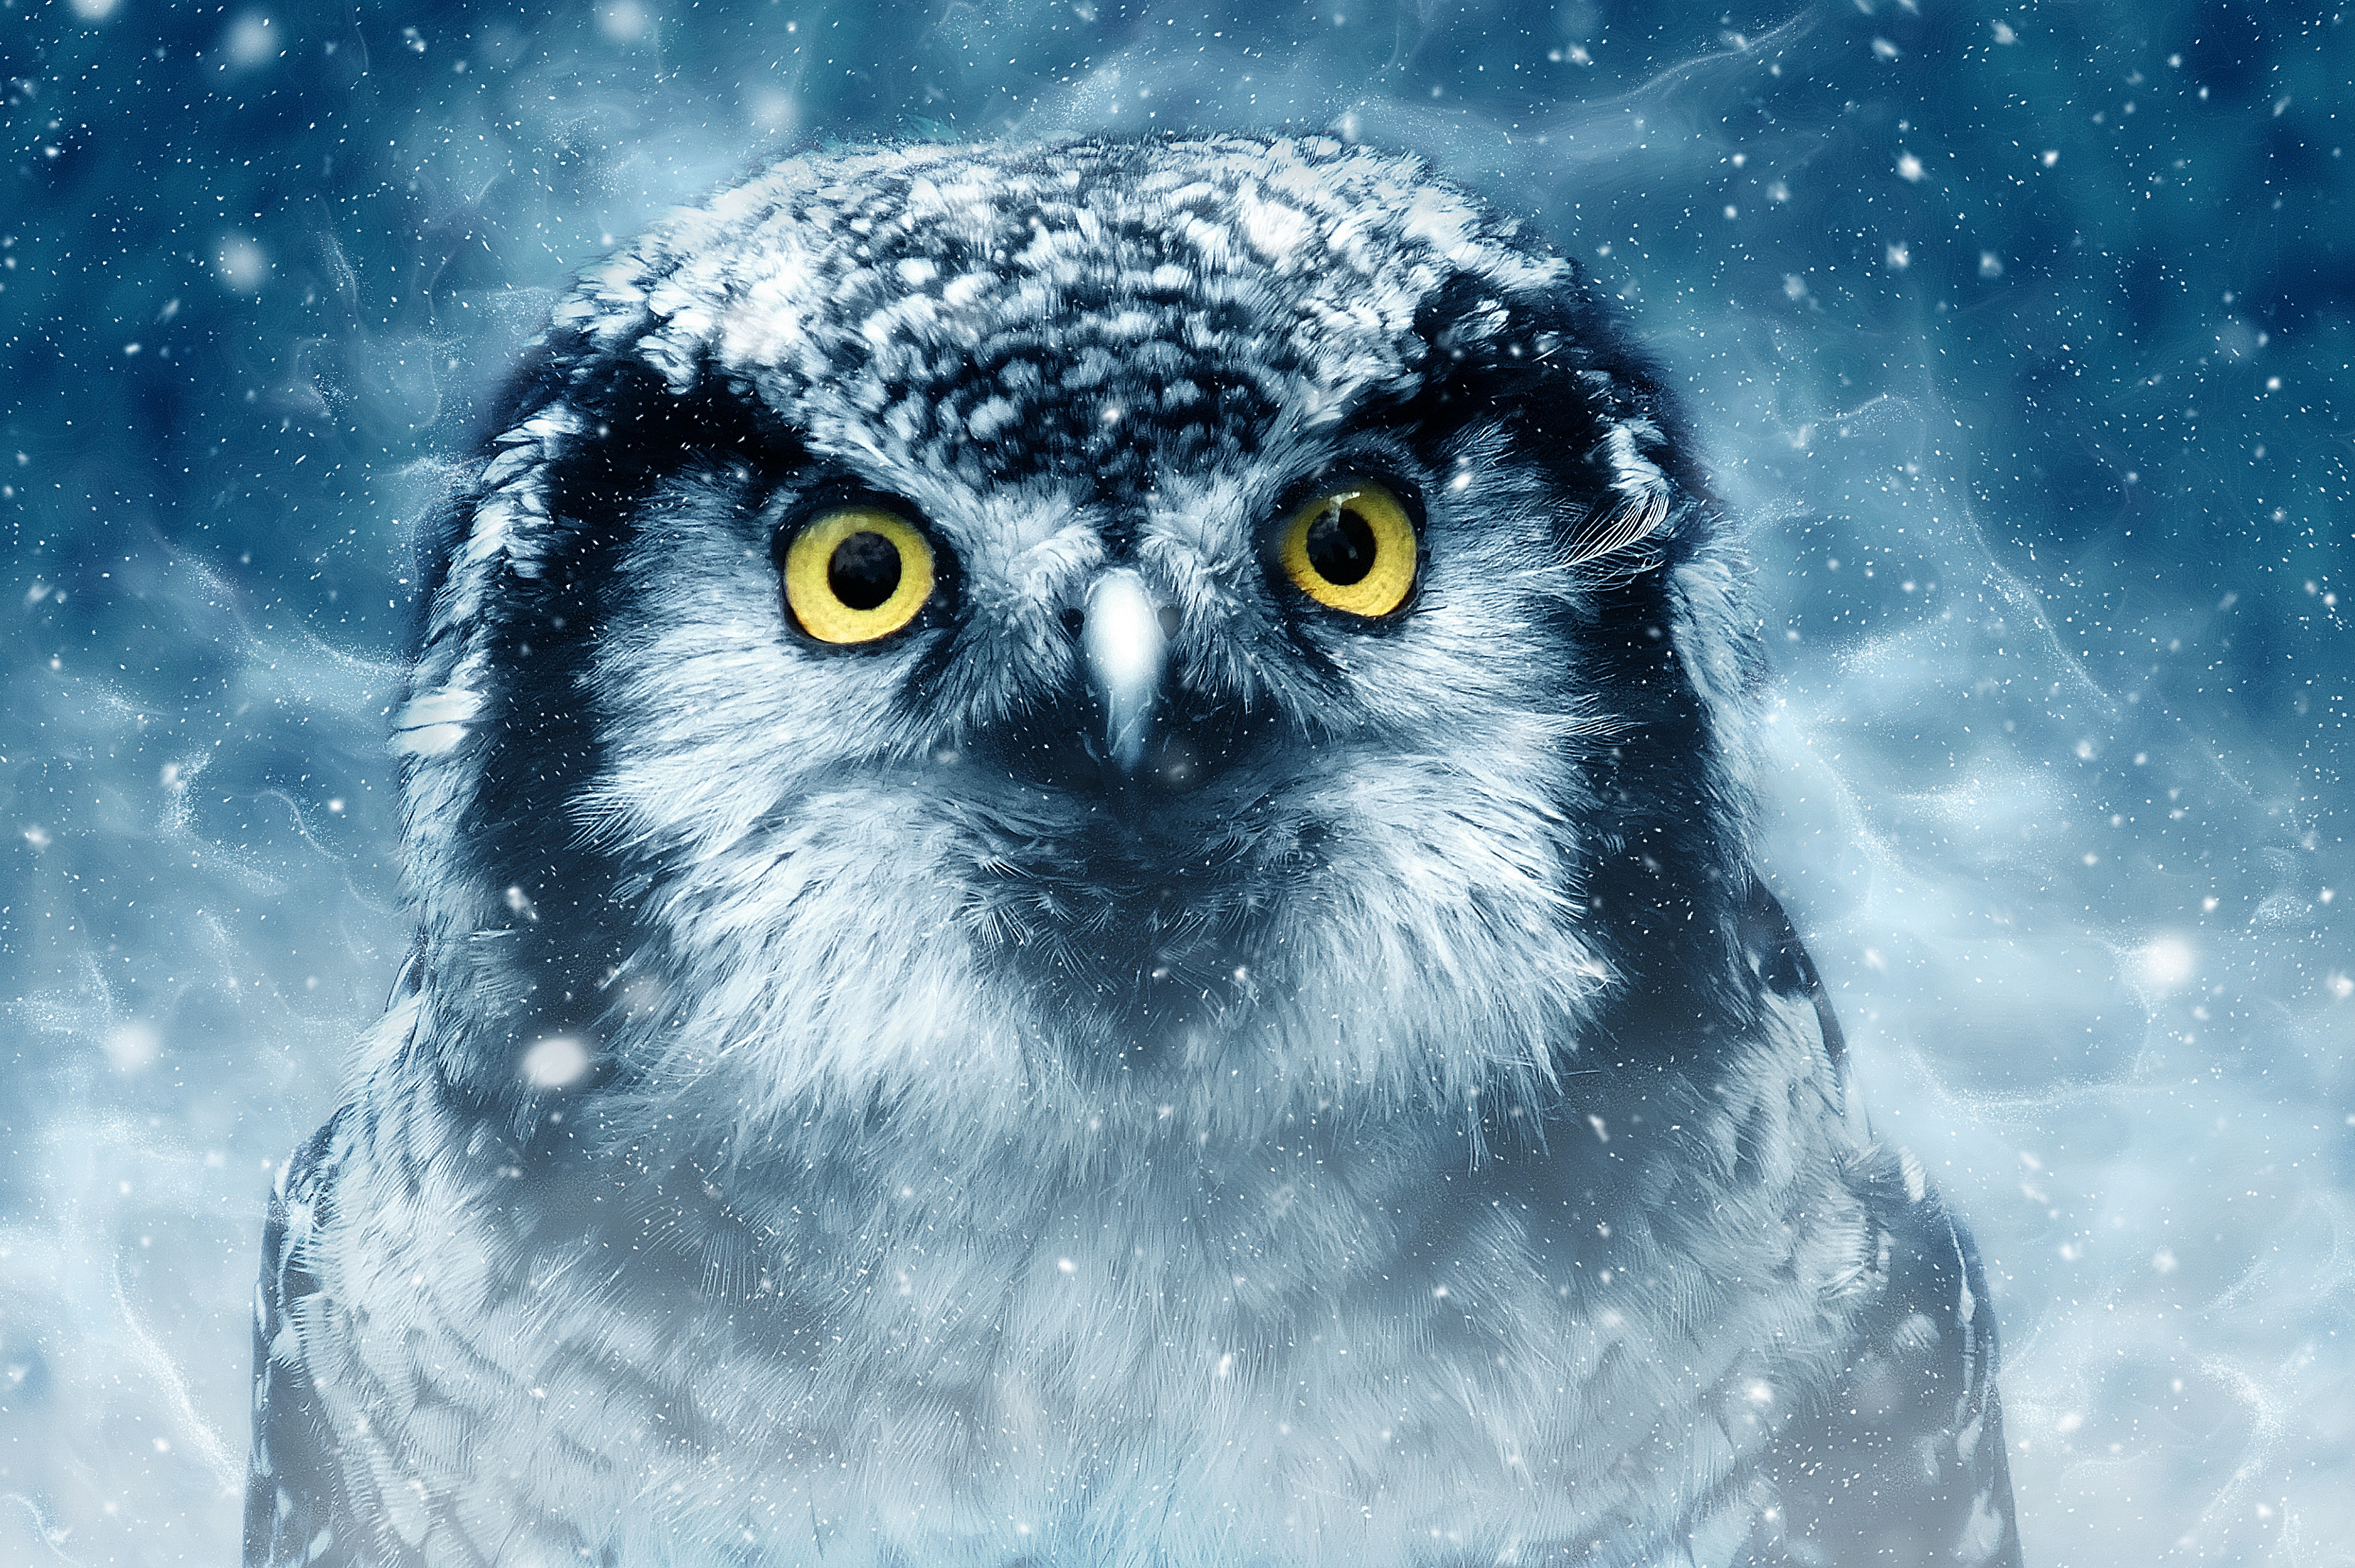 52872 download wallpaper Animals, Owl, Bird, Eyes, Looks, Close-Up, Predator, Wildlife screensavers and pictures for free